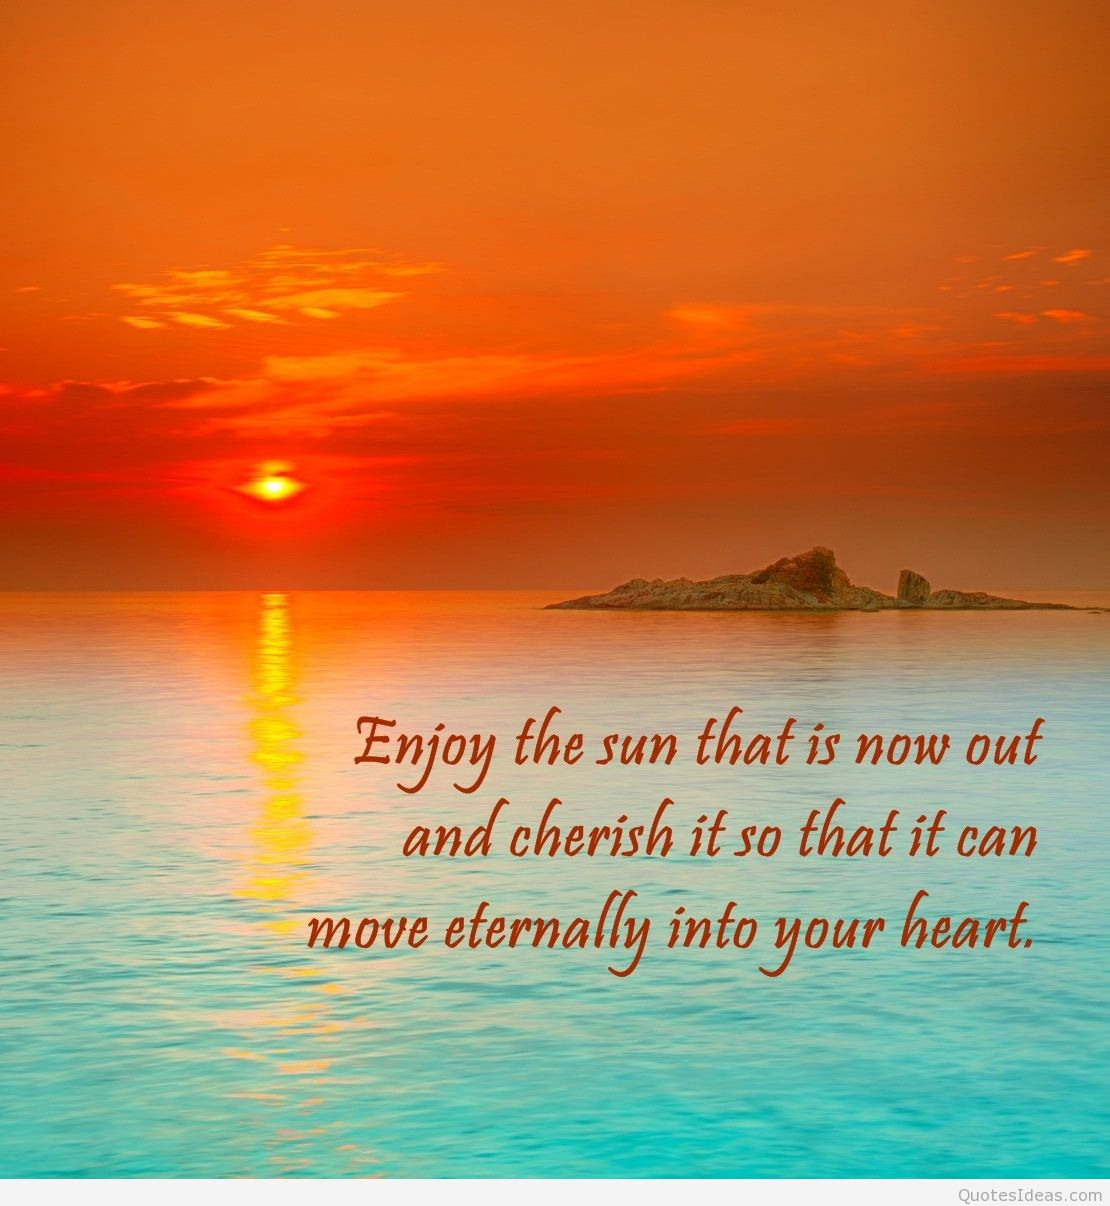 Inspirational Quotes On Sunrise Summer Holidays Quotes Sayings On Images